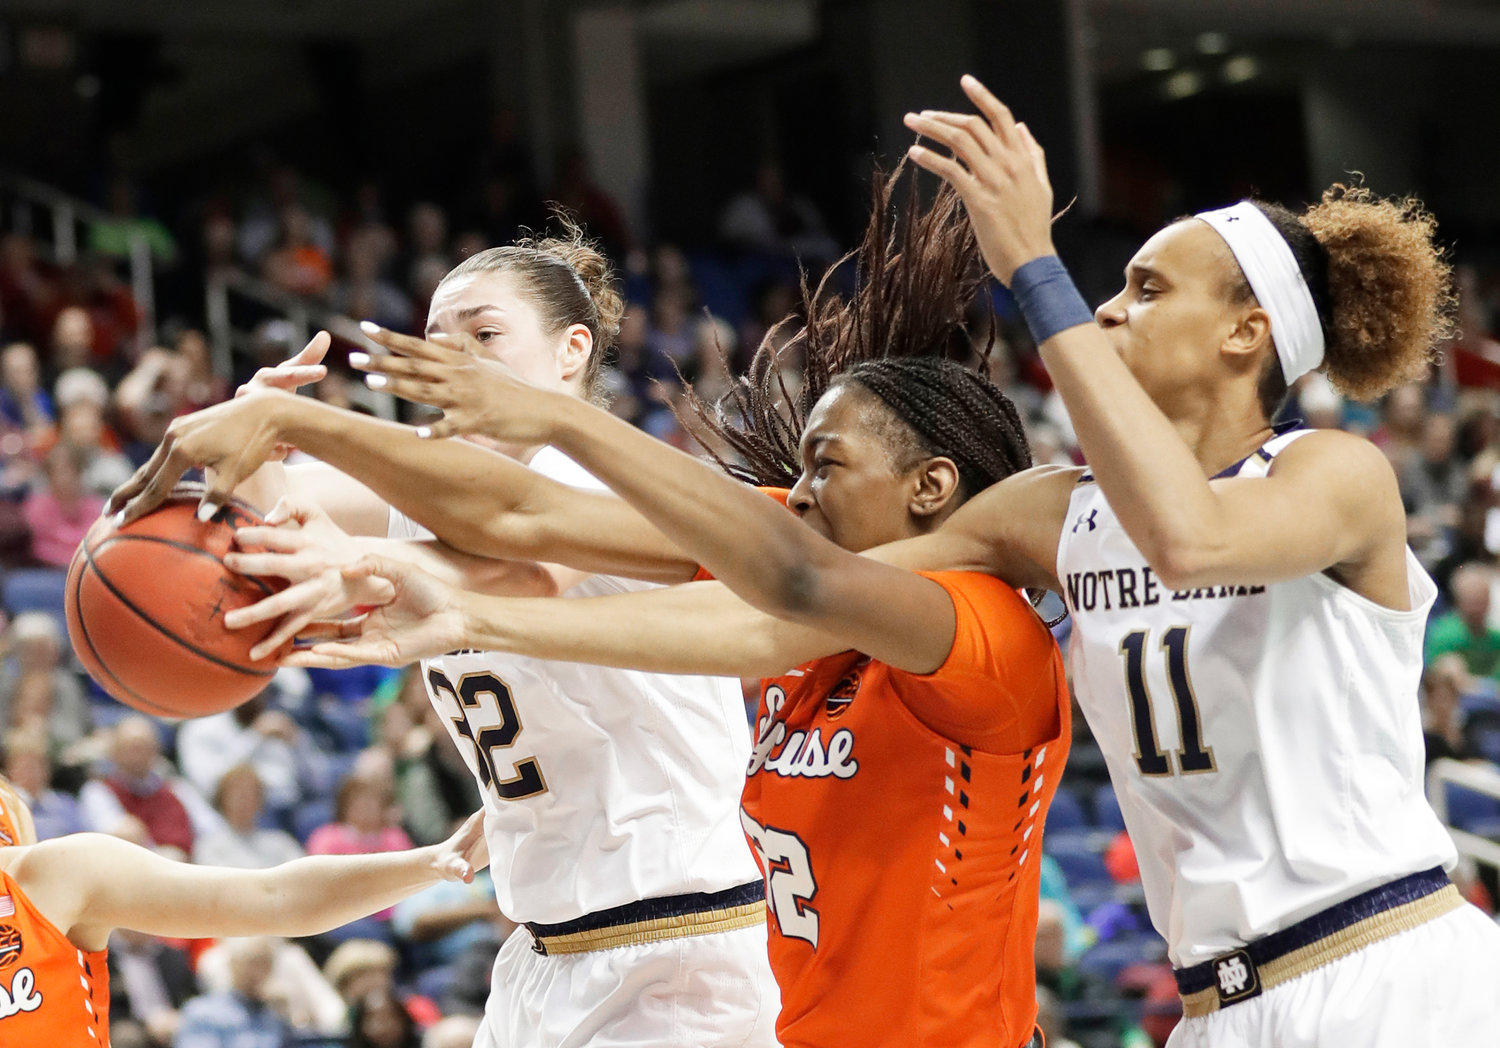 ALL ARMS — Syracuse's Amaya Finklea-Guity, middle, battles Notre Dame's Brianna Turner, right, and Jessica Shepard for a rebound during the second half of Saturday's ACC Tournament semifinal game in Greensboro, N.C. Notre Dame breezed to a 91-66 win.